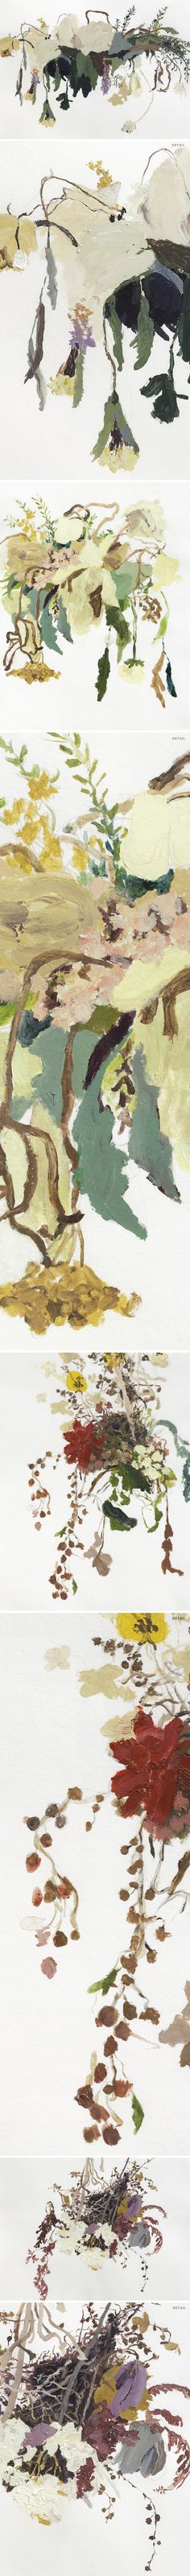 Oh, my. Big, loose, messy bouquets of drying flowers. These paintings {acrylic on paper} are the work of American artist Sarah Meyers Brent. She does some insane mixed media work too… but oh, these pa